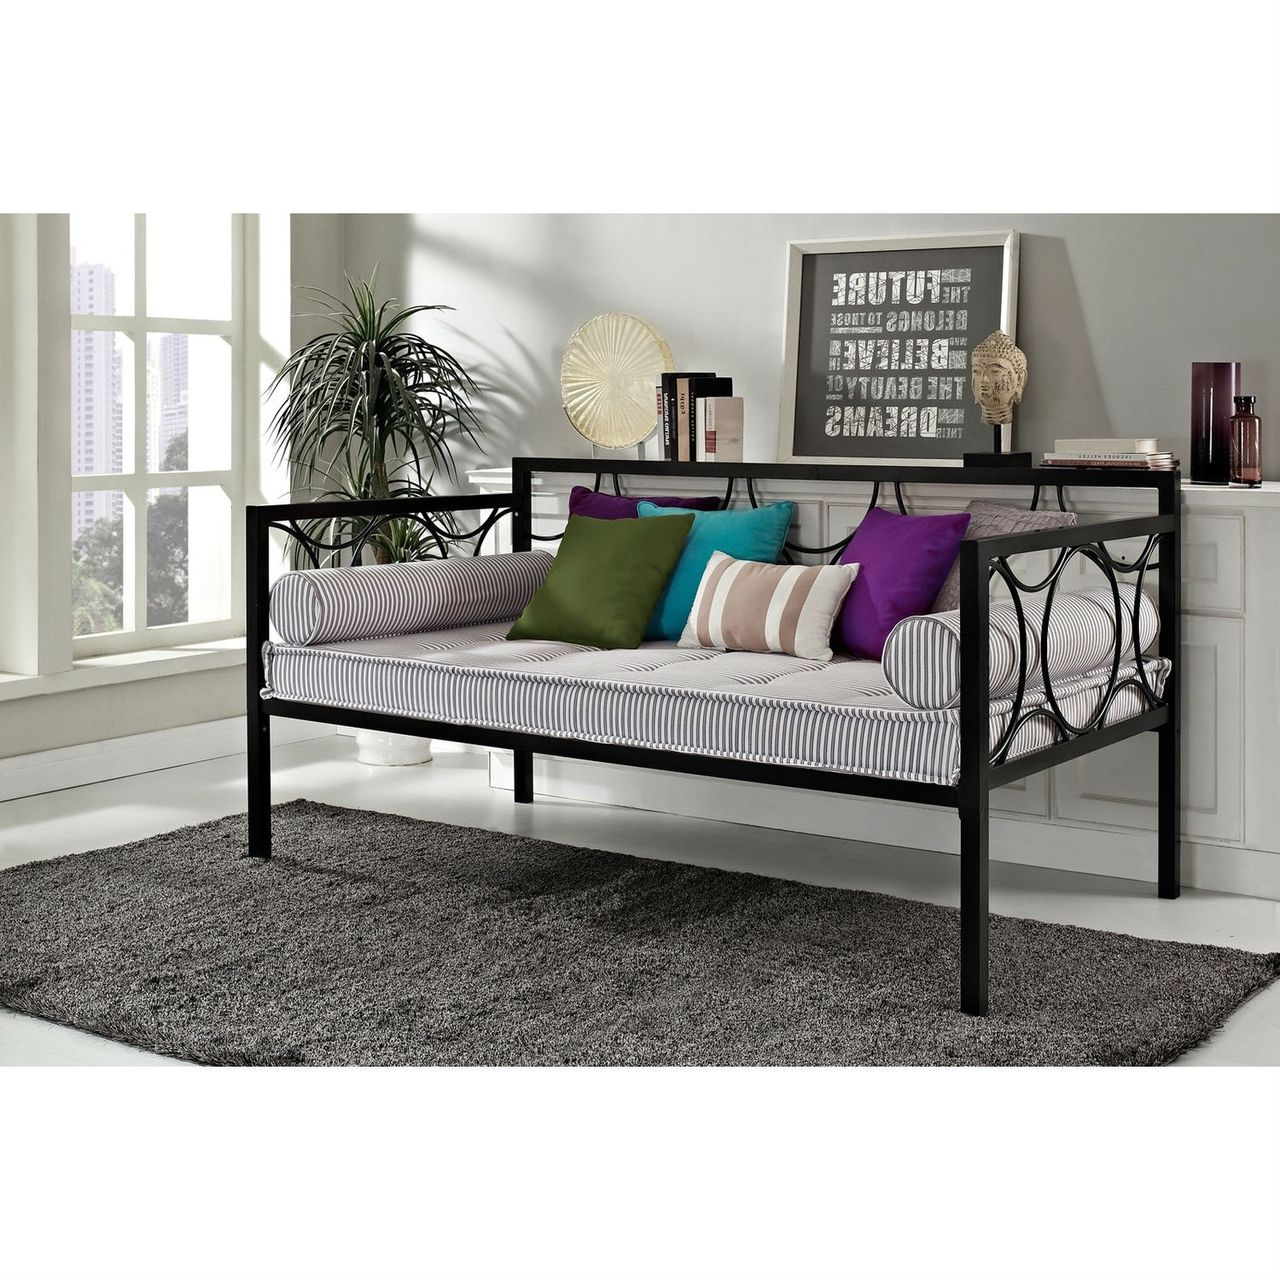 - Twin Modern Black Metal Daybeds - Use As Bed Or Seating (With